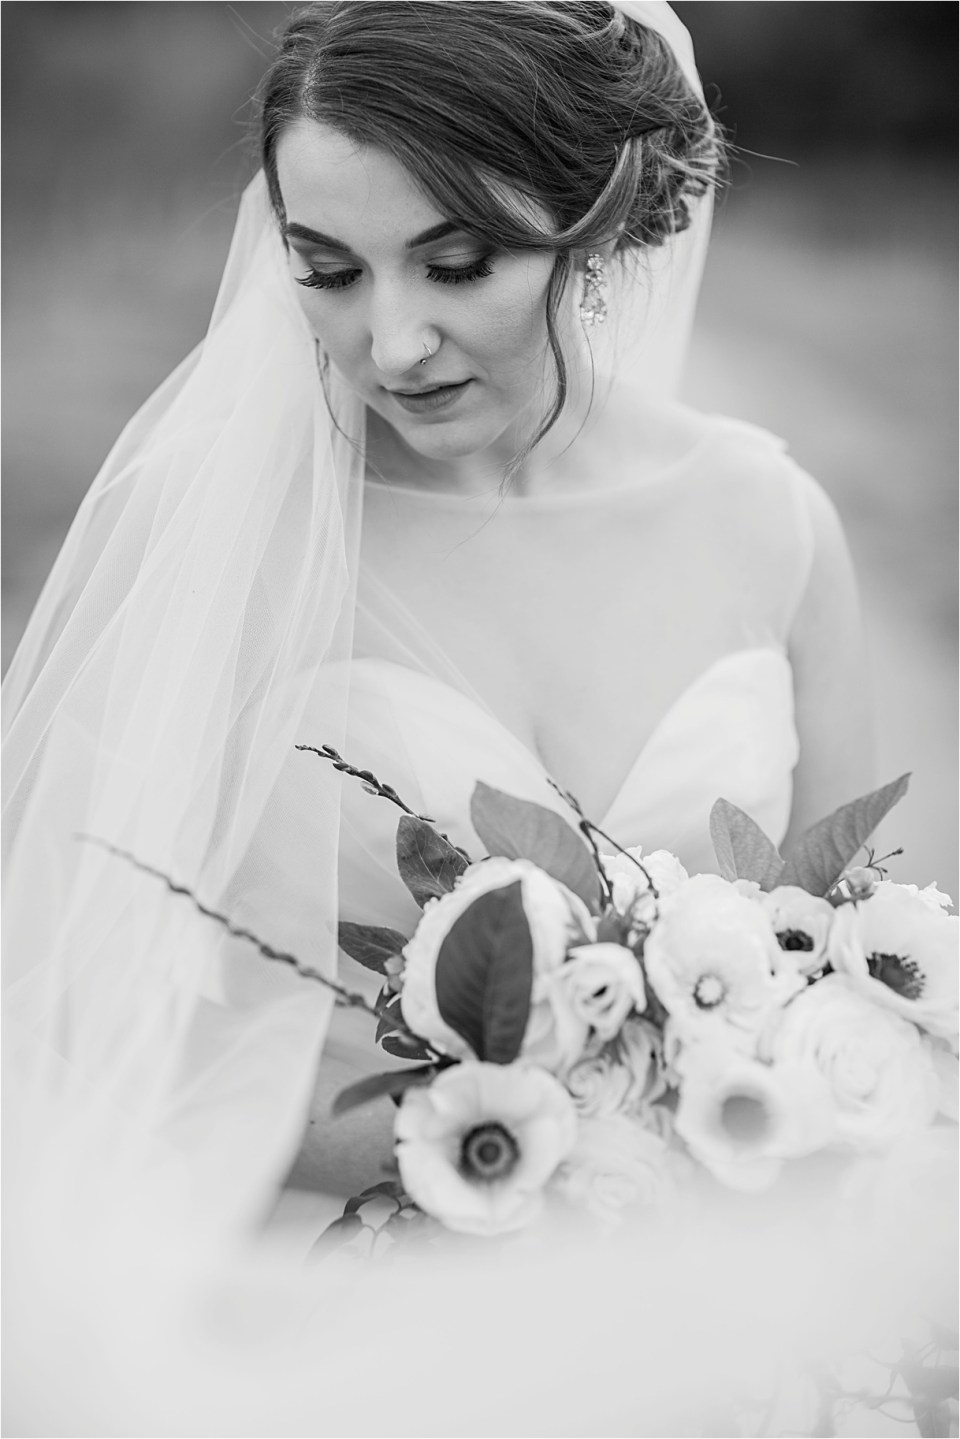 Bride shown in black and white gazing over her shoulder.